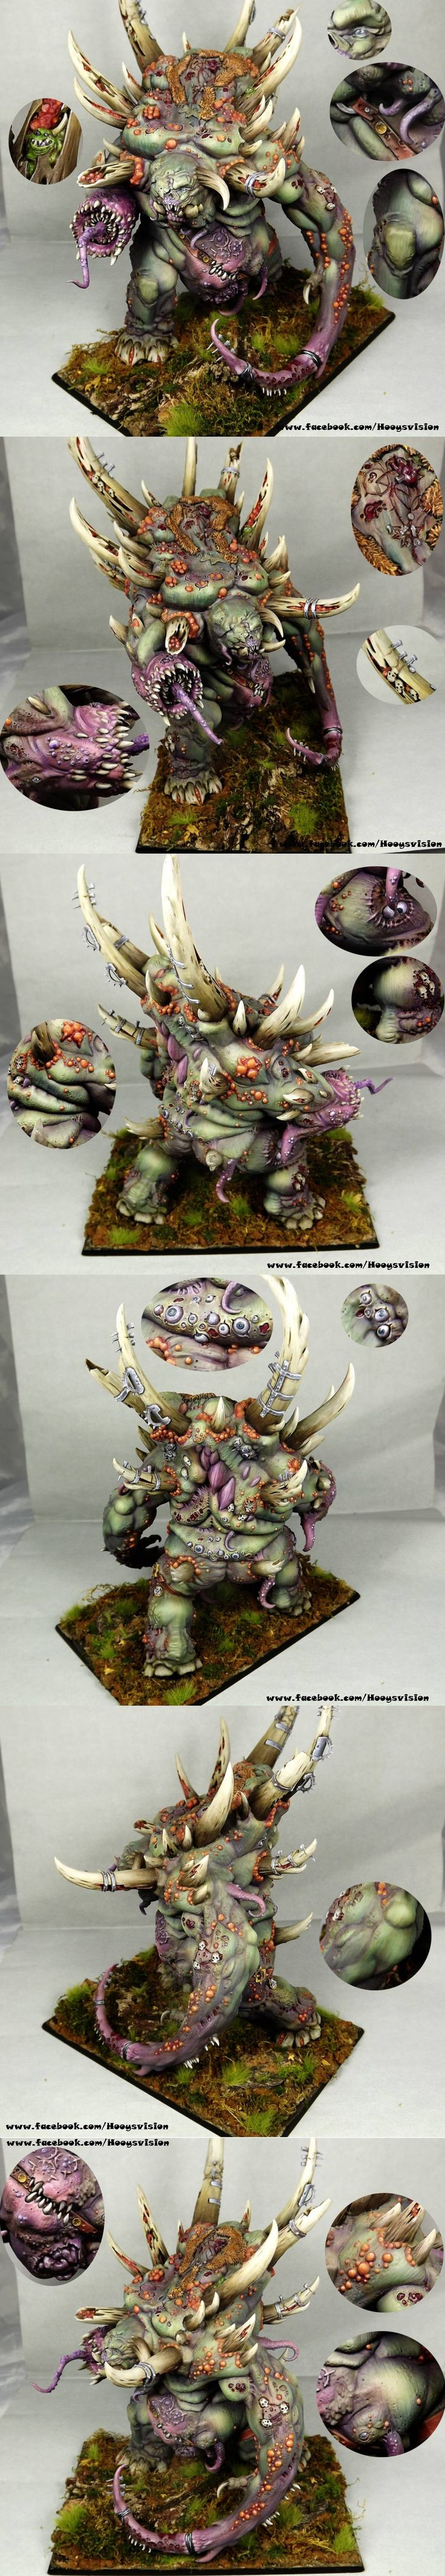 Nurgle Chaos The Glottkin